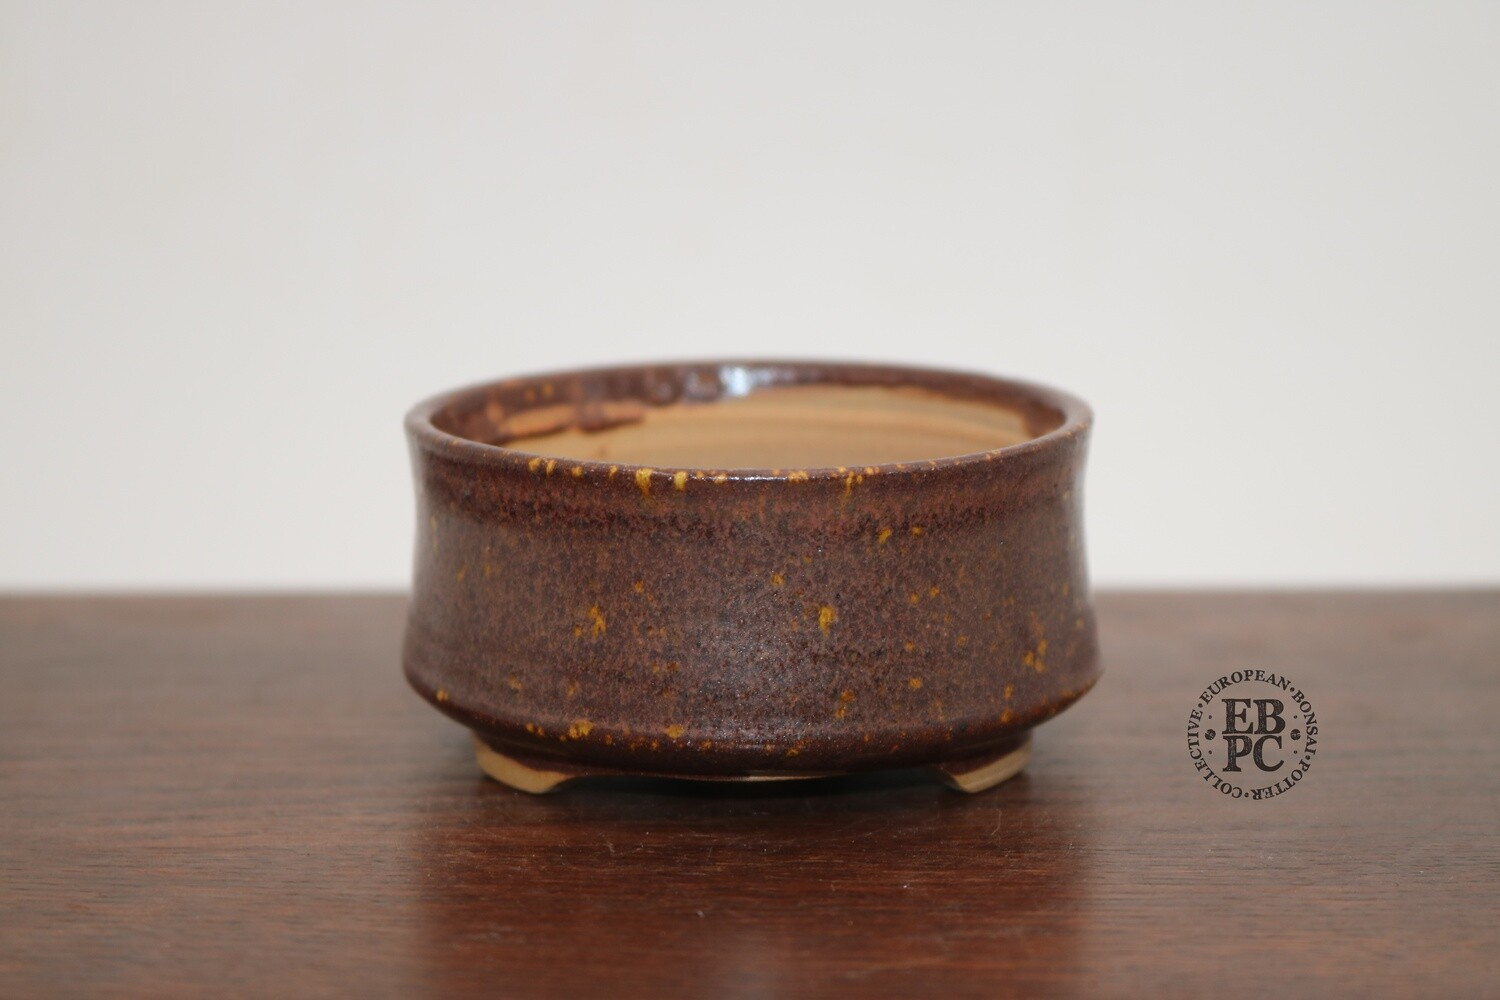 PAS Pots - 8.3cm  Round; Mame / Accent pot; Hand Thrown; Superb glaze; Browns; Hints of Orange; Detailed foot ring; Patricia